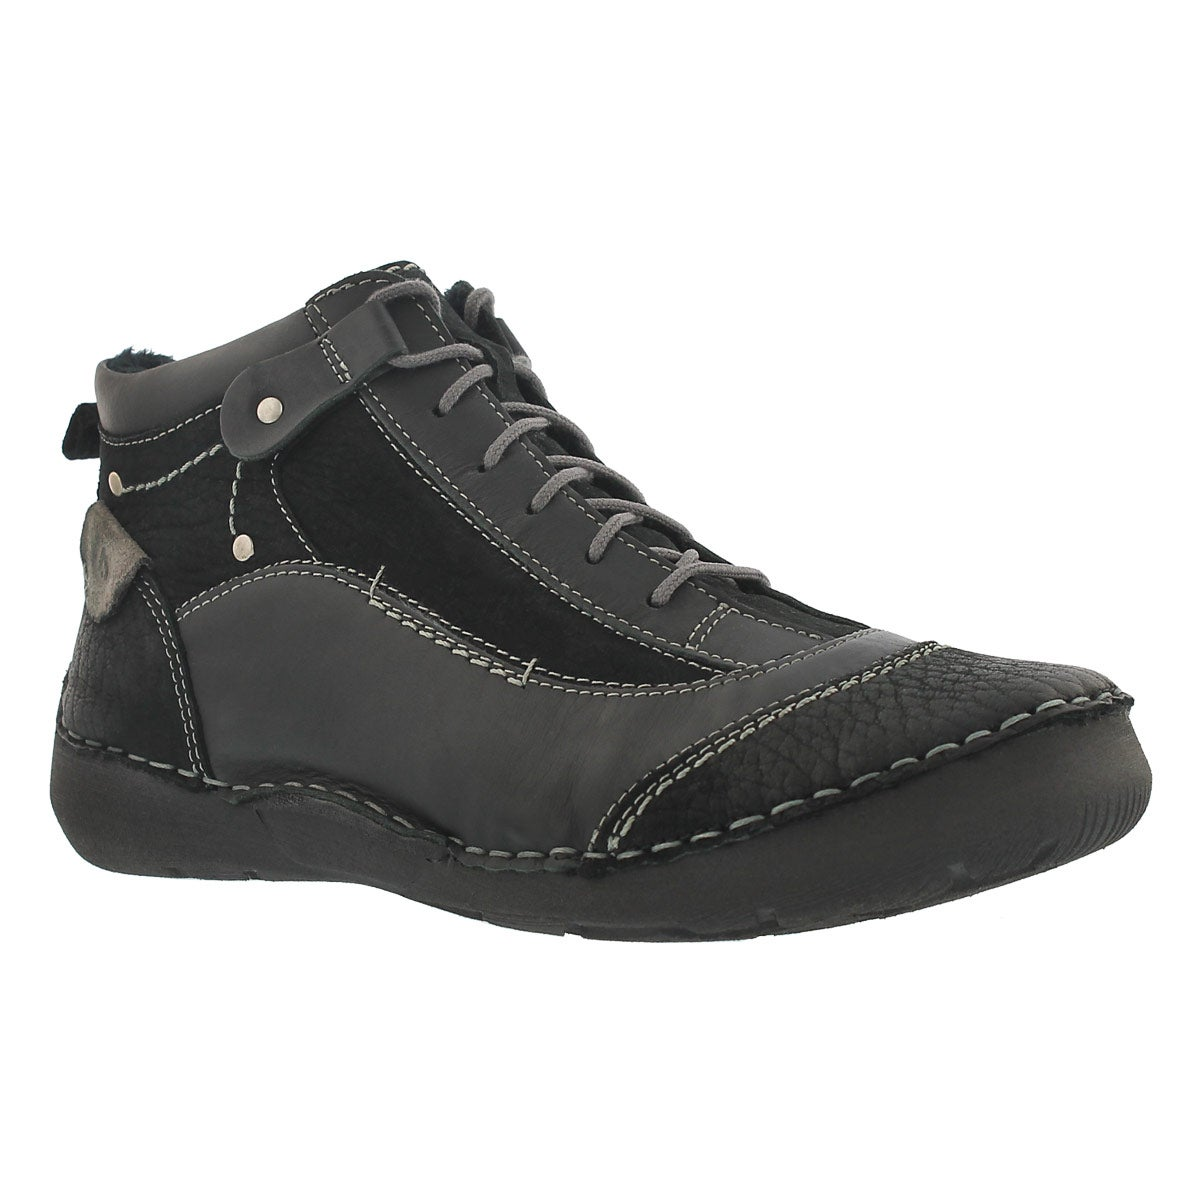 Lds Fergy 04 black ankle boot